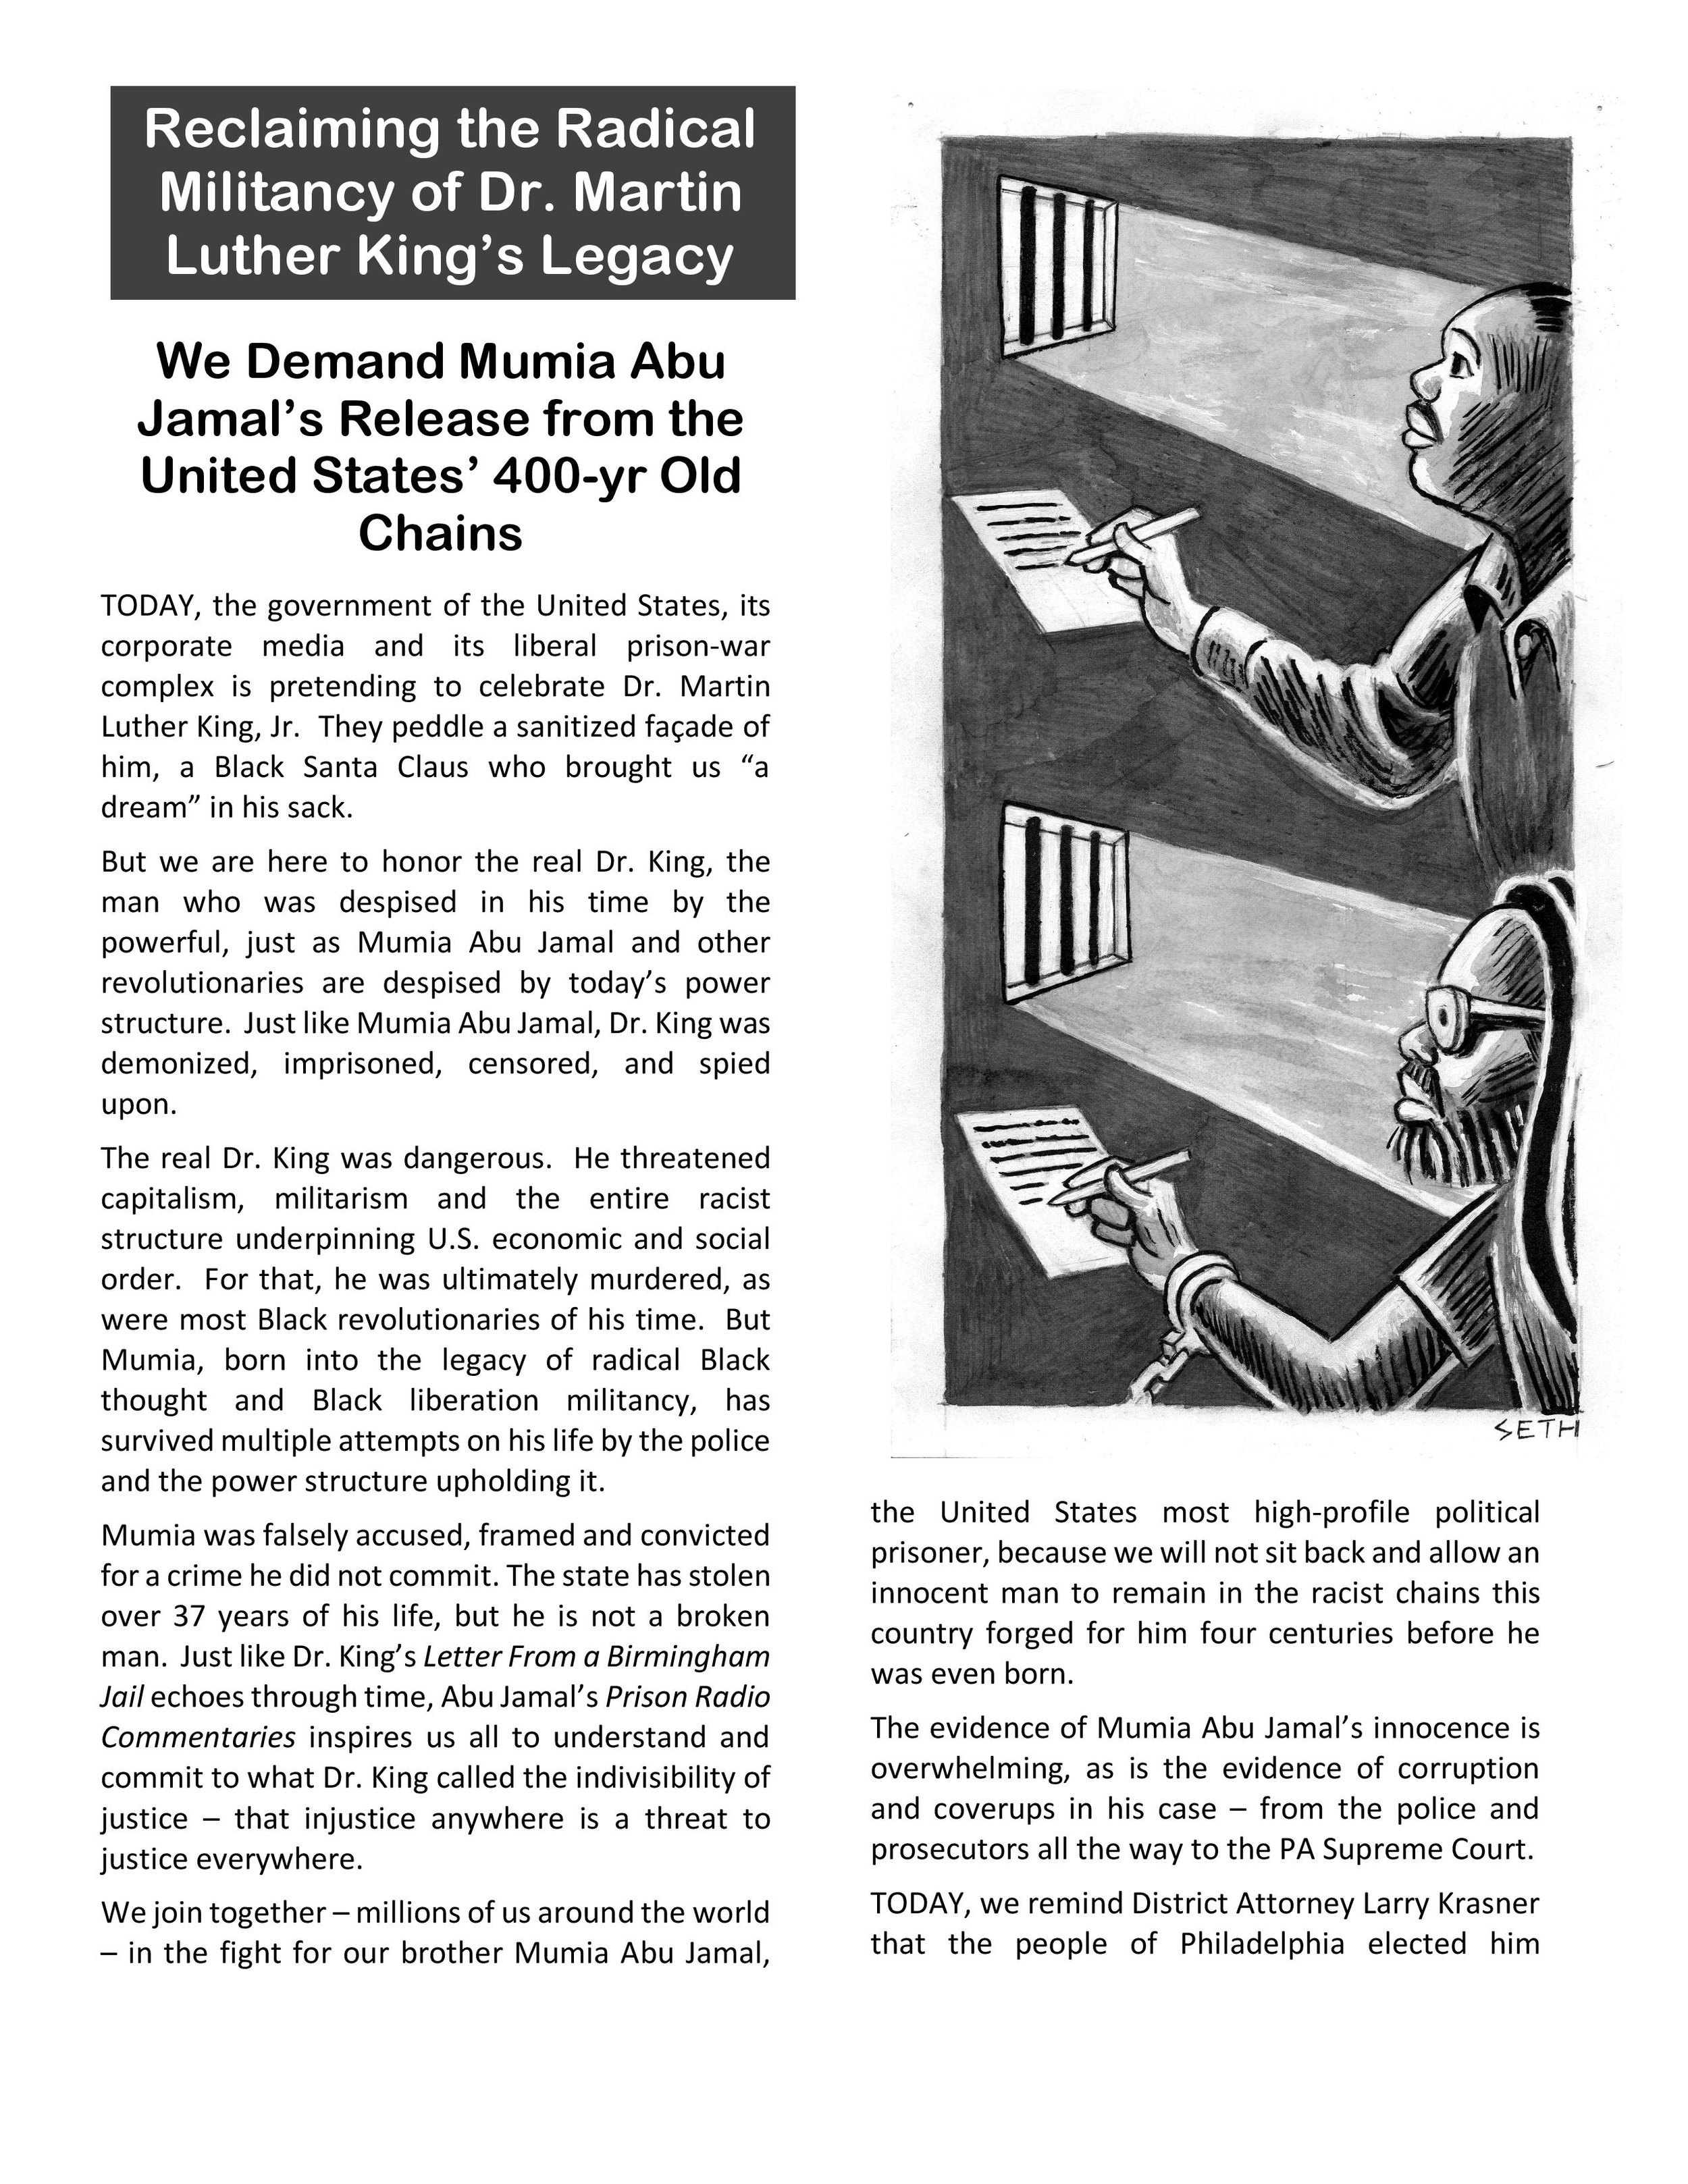 Mumia MLK Day Flyer 2019 (2)-page-001.jpg